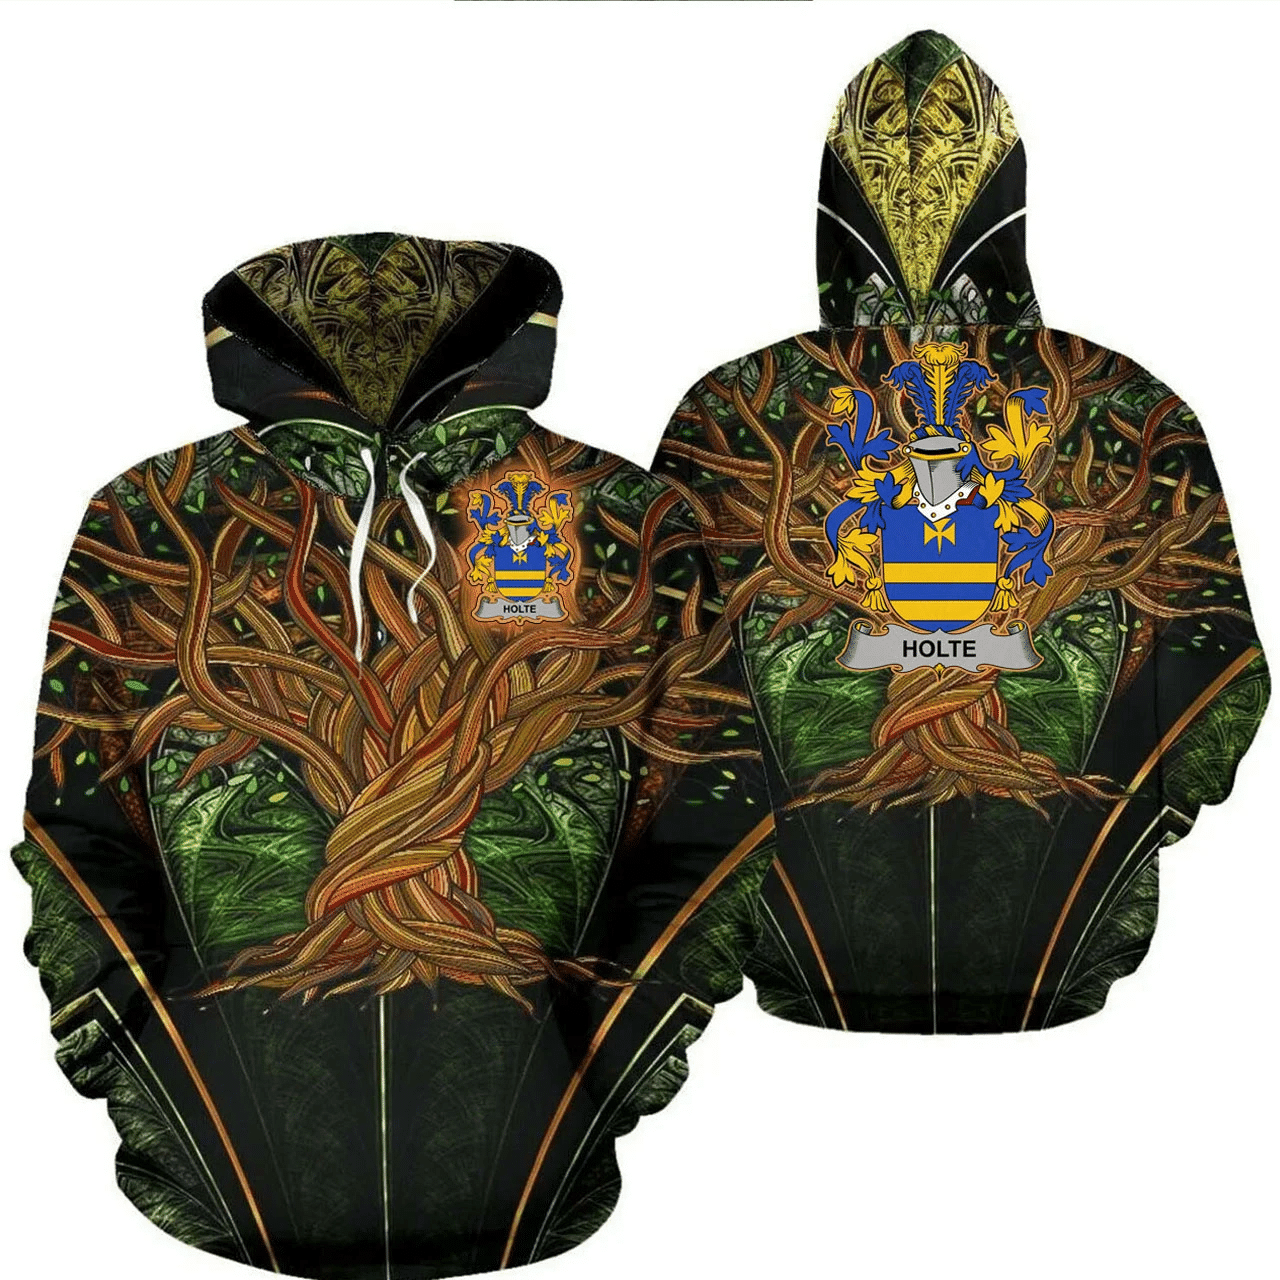 1stIreland Ireland Hoodie - Holte or Holt Irish Family Crest Hoodie - Tree Of Life A7